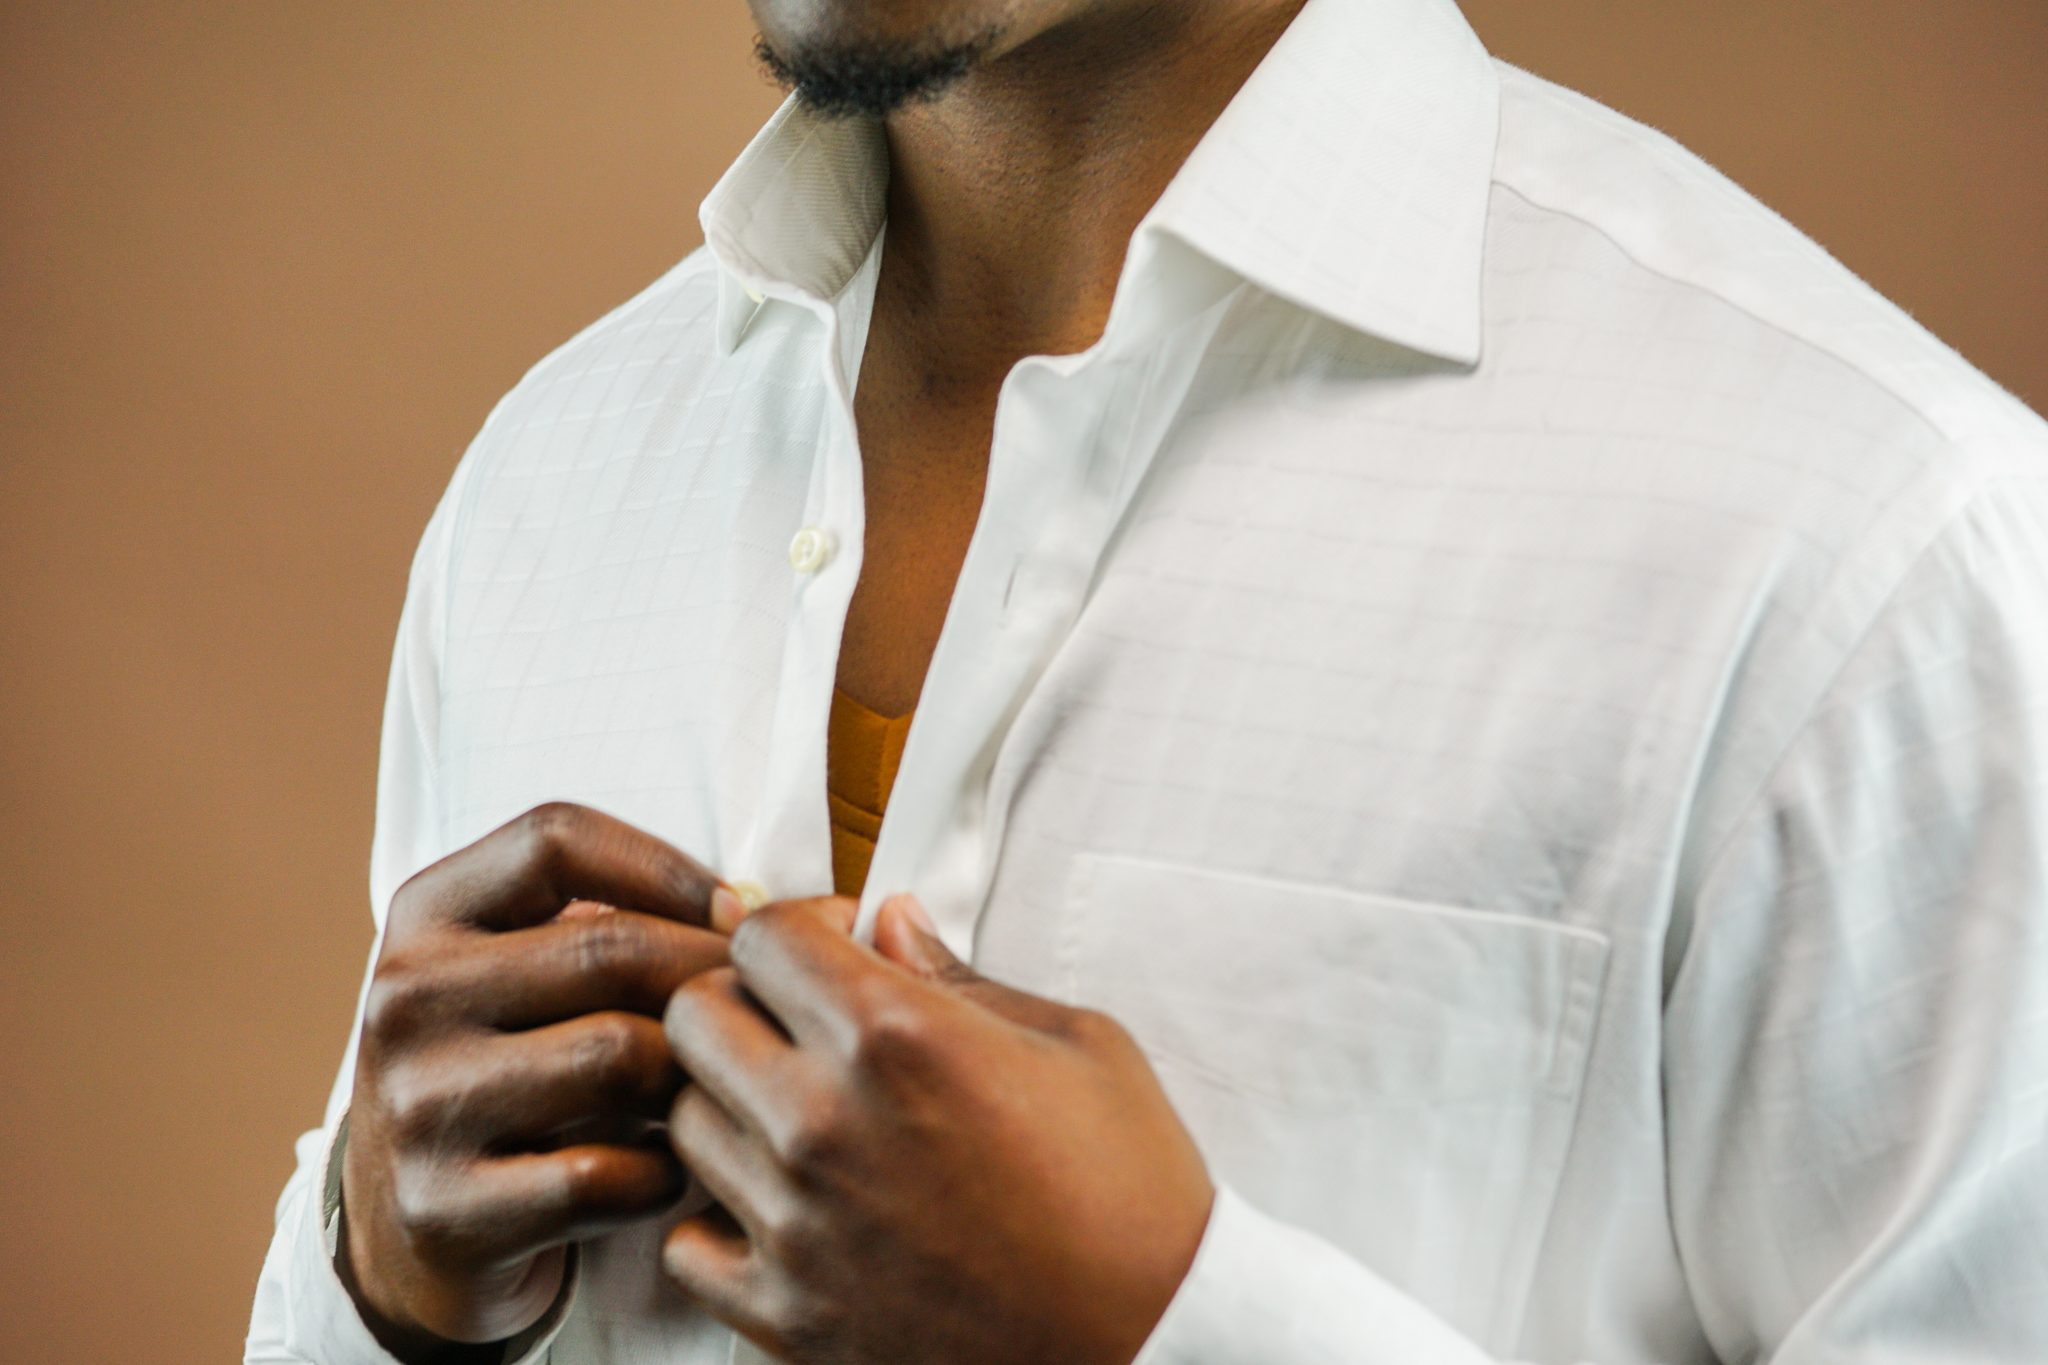 3 Reasons Why Men Should Wear An Undershirt